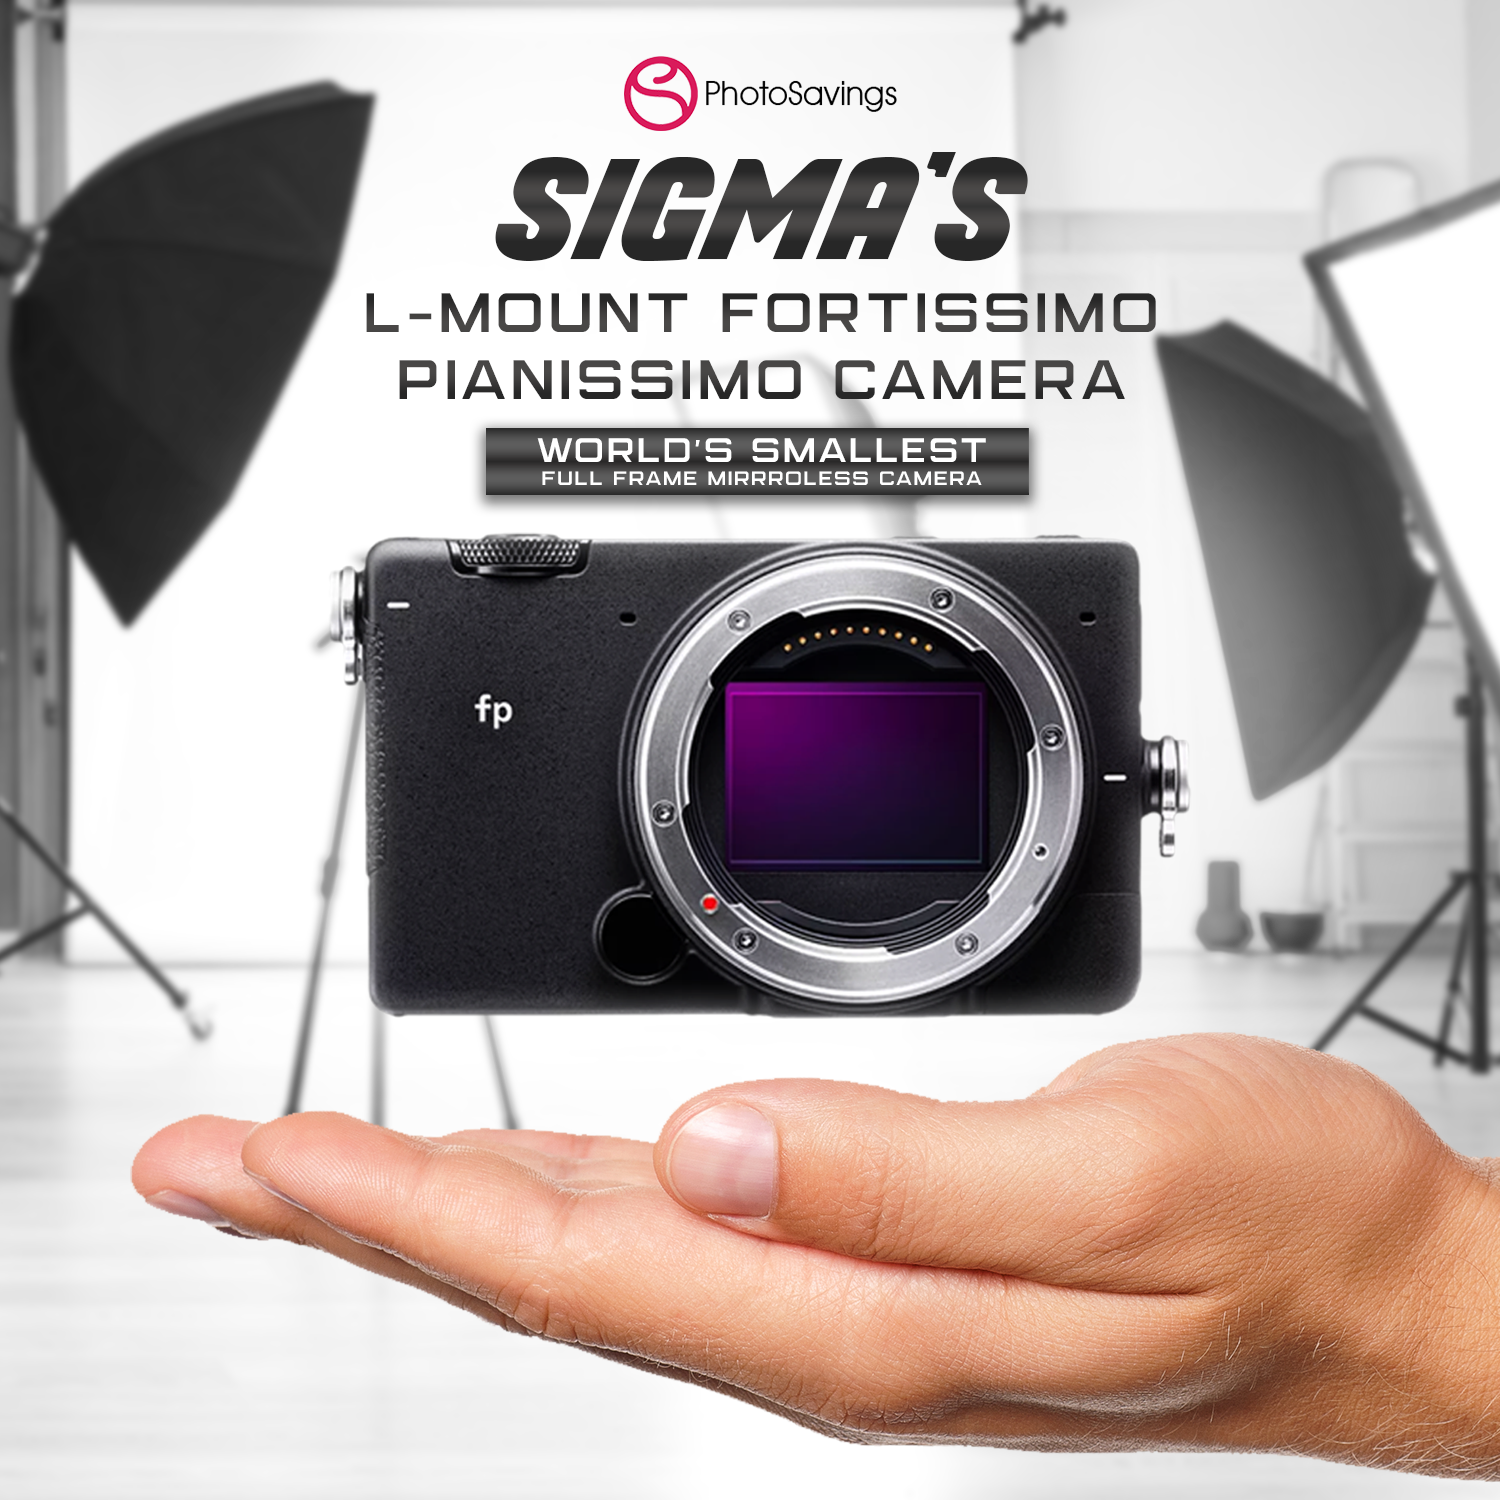 Sigma Presents the World's Smallest Full-Frame Camera With the L-Mount 'Fortissimo Pianissimo'